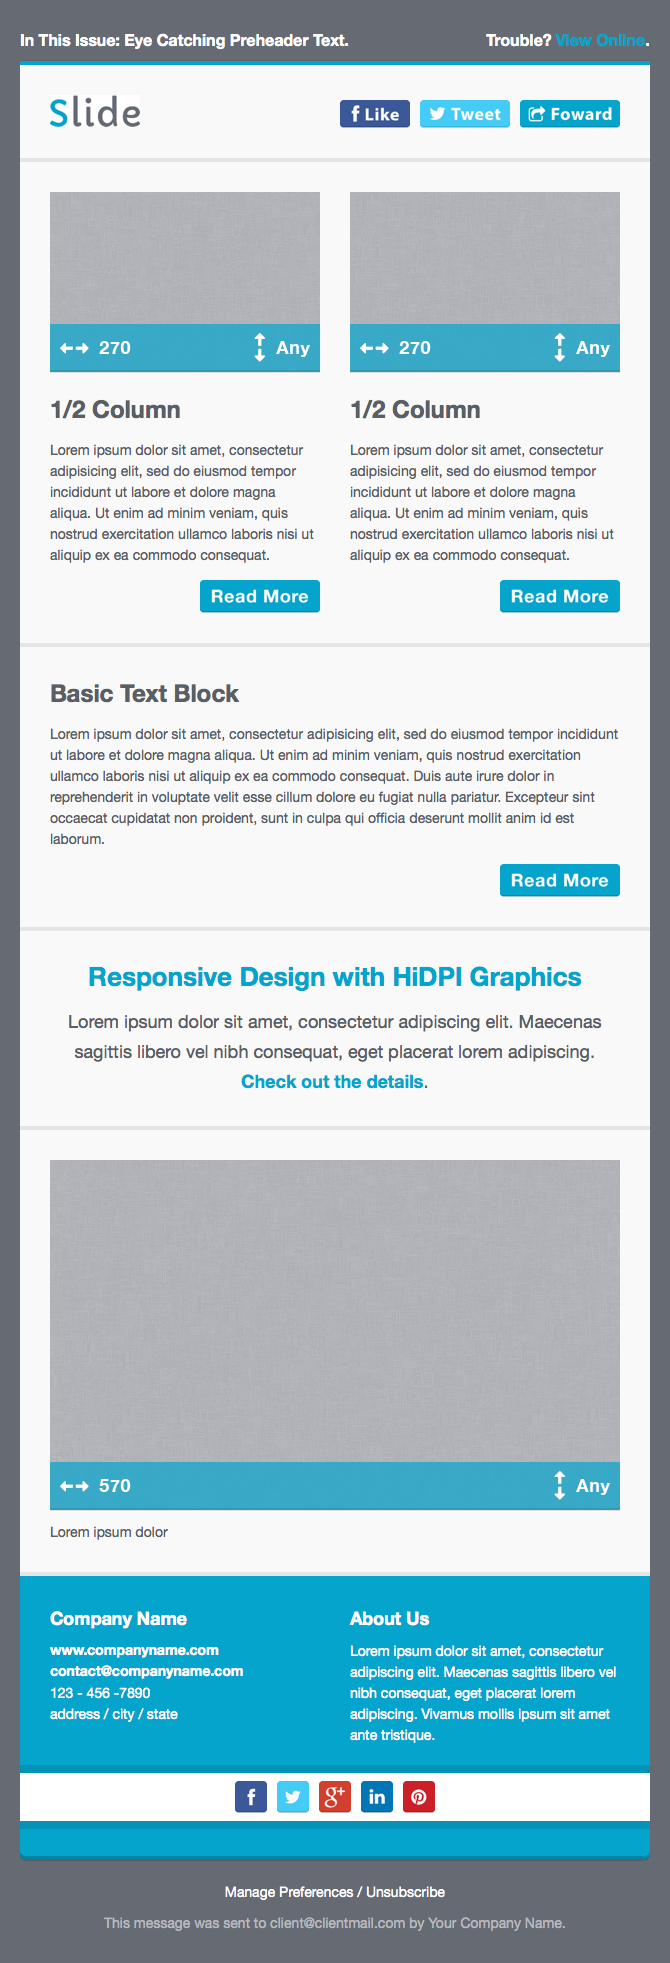 Slide responsive email template by creekjumper themeforest for How to make a responsive email template